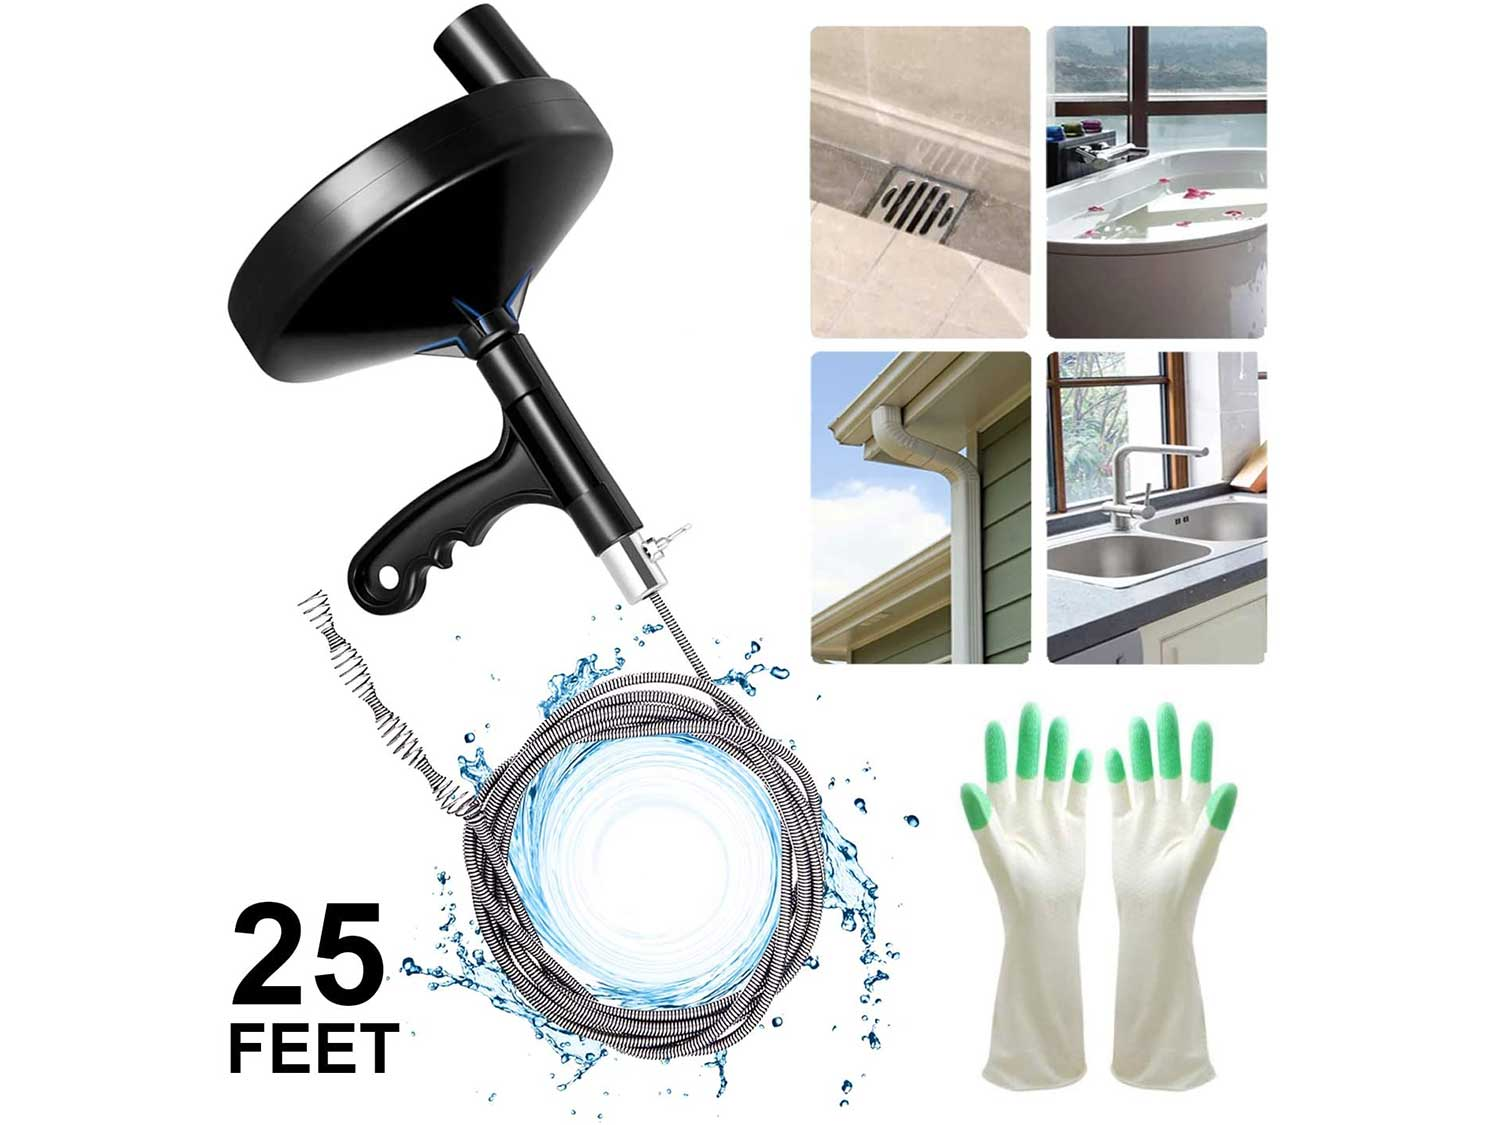 Drain Auger 25 Foot, Plumbing Snake Drain Auger Sink Auger Hair Clog Remover, Heavy Duty Pipe Snake for Bathtub Drain, Bathroom Sink, Kitchen and Shower, Snake Drain Cleaner Comes with Gloves